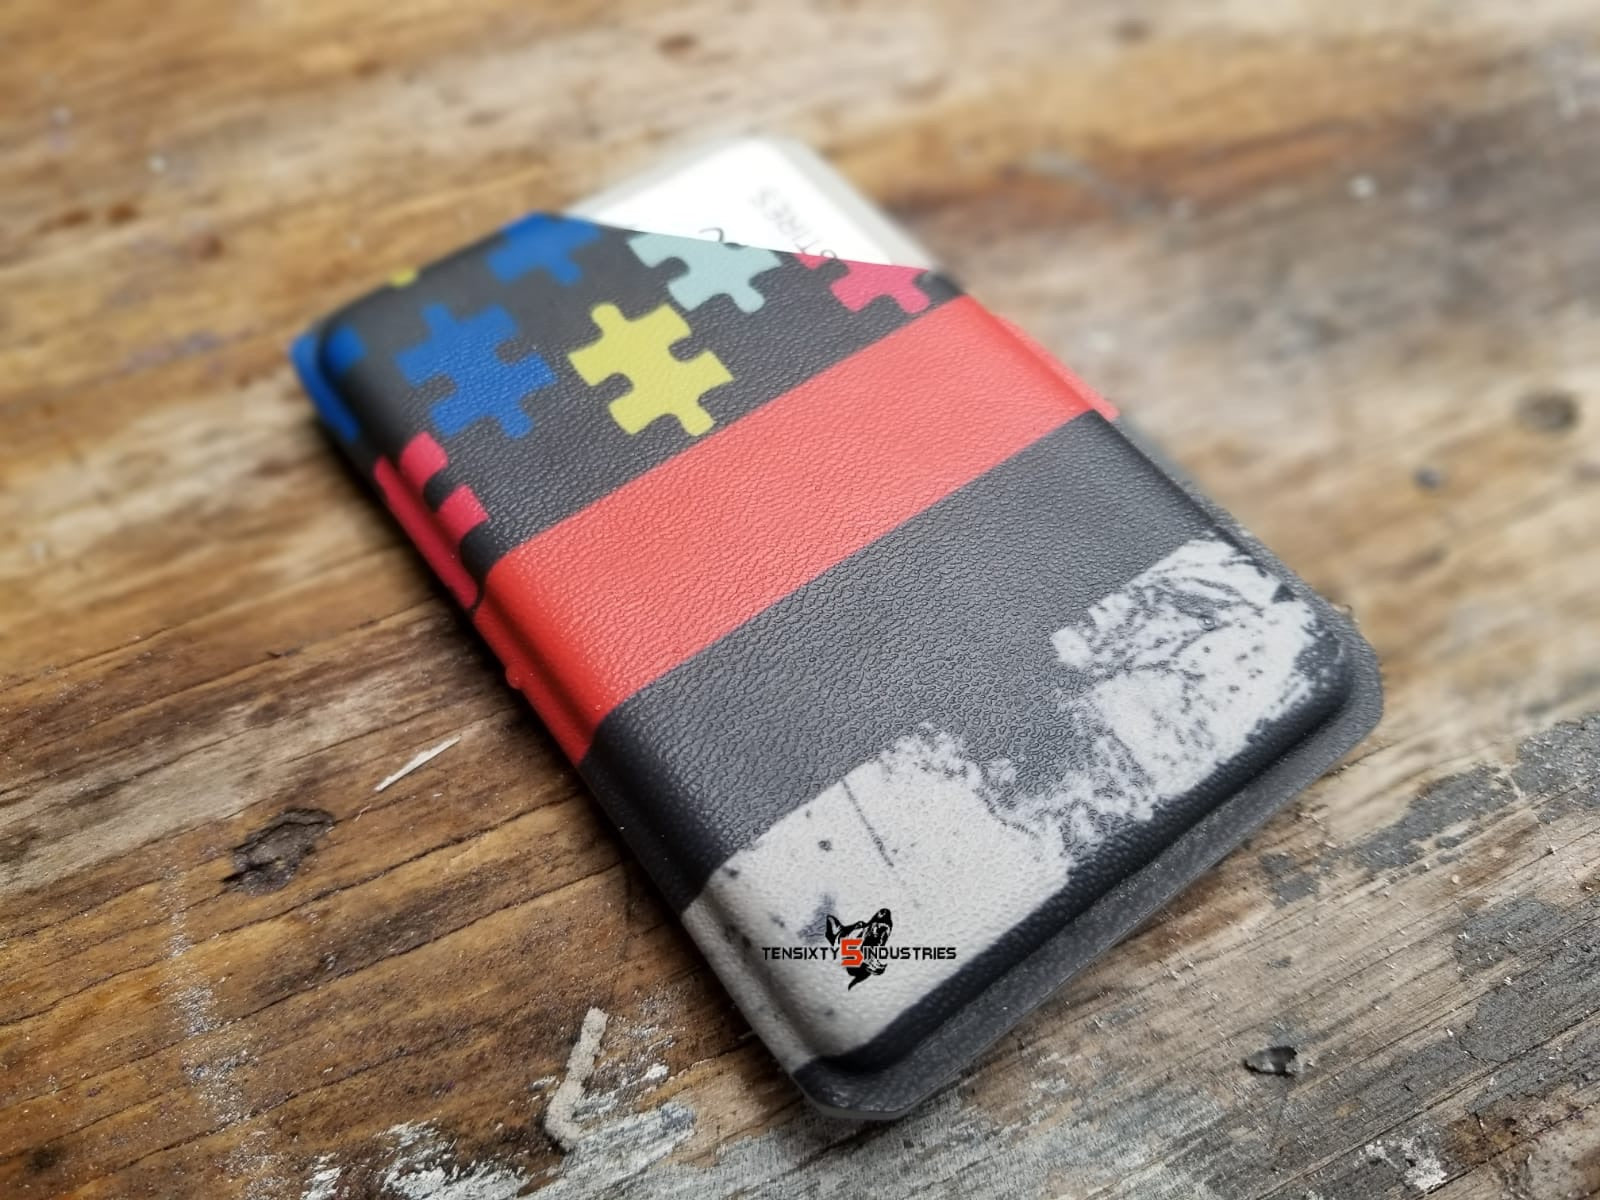 UC Autism Awareness Kydex Wallet PRE SALE ONLY (3 WEEK TURN AROUND FROM PLACED ORDER)